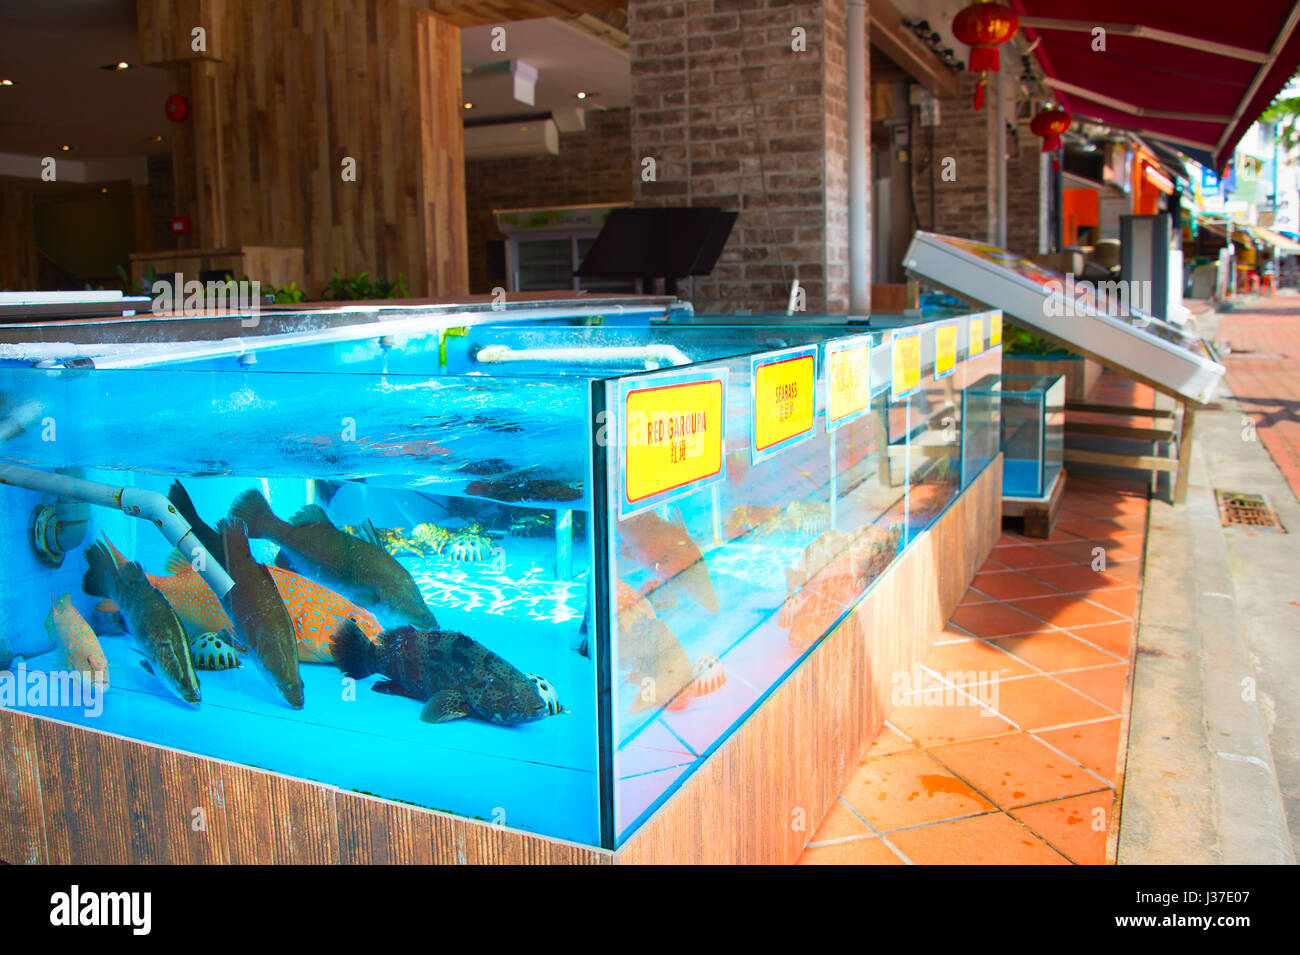 Singapore chinese restaurant stock photos singapore for Live fish tank